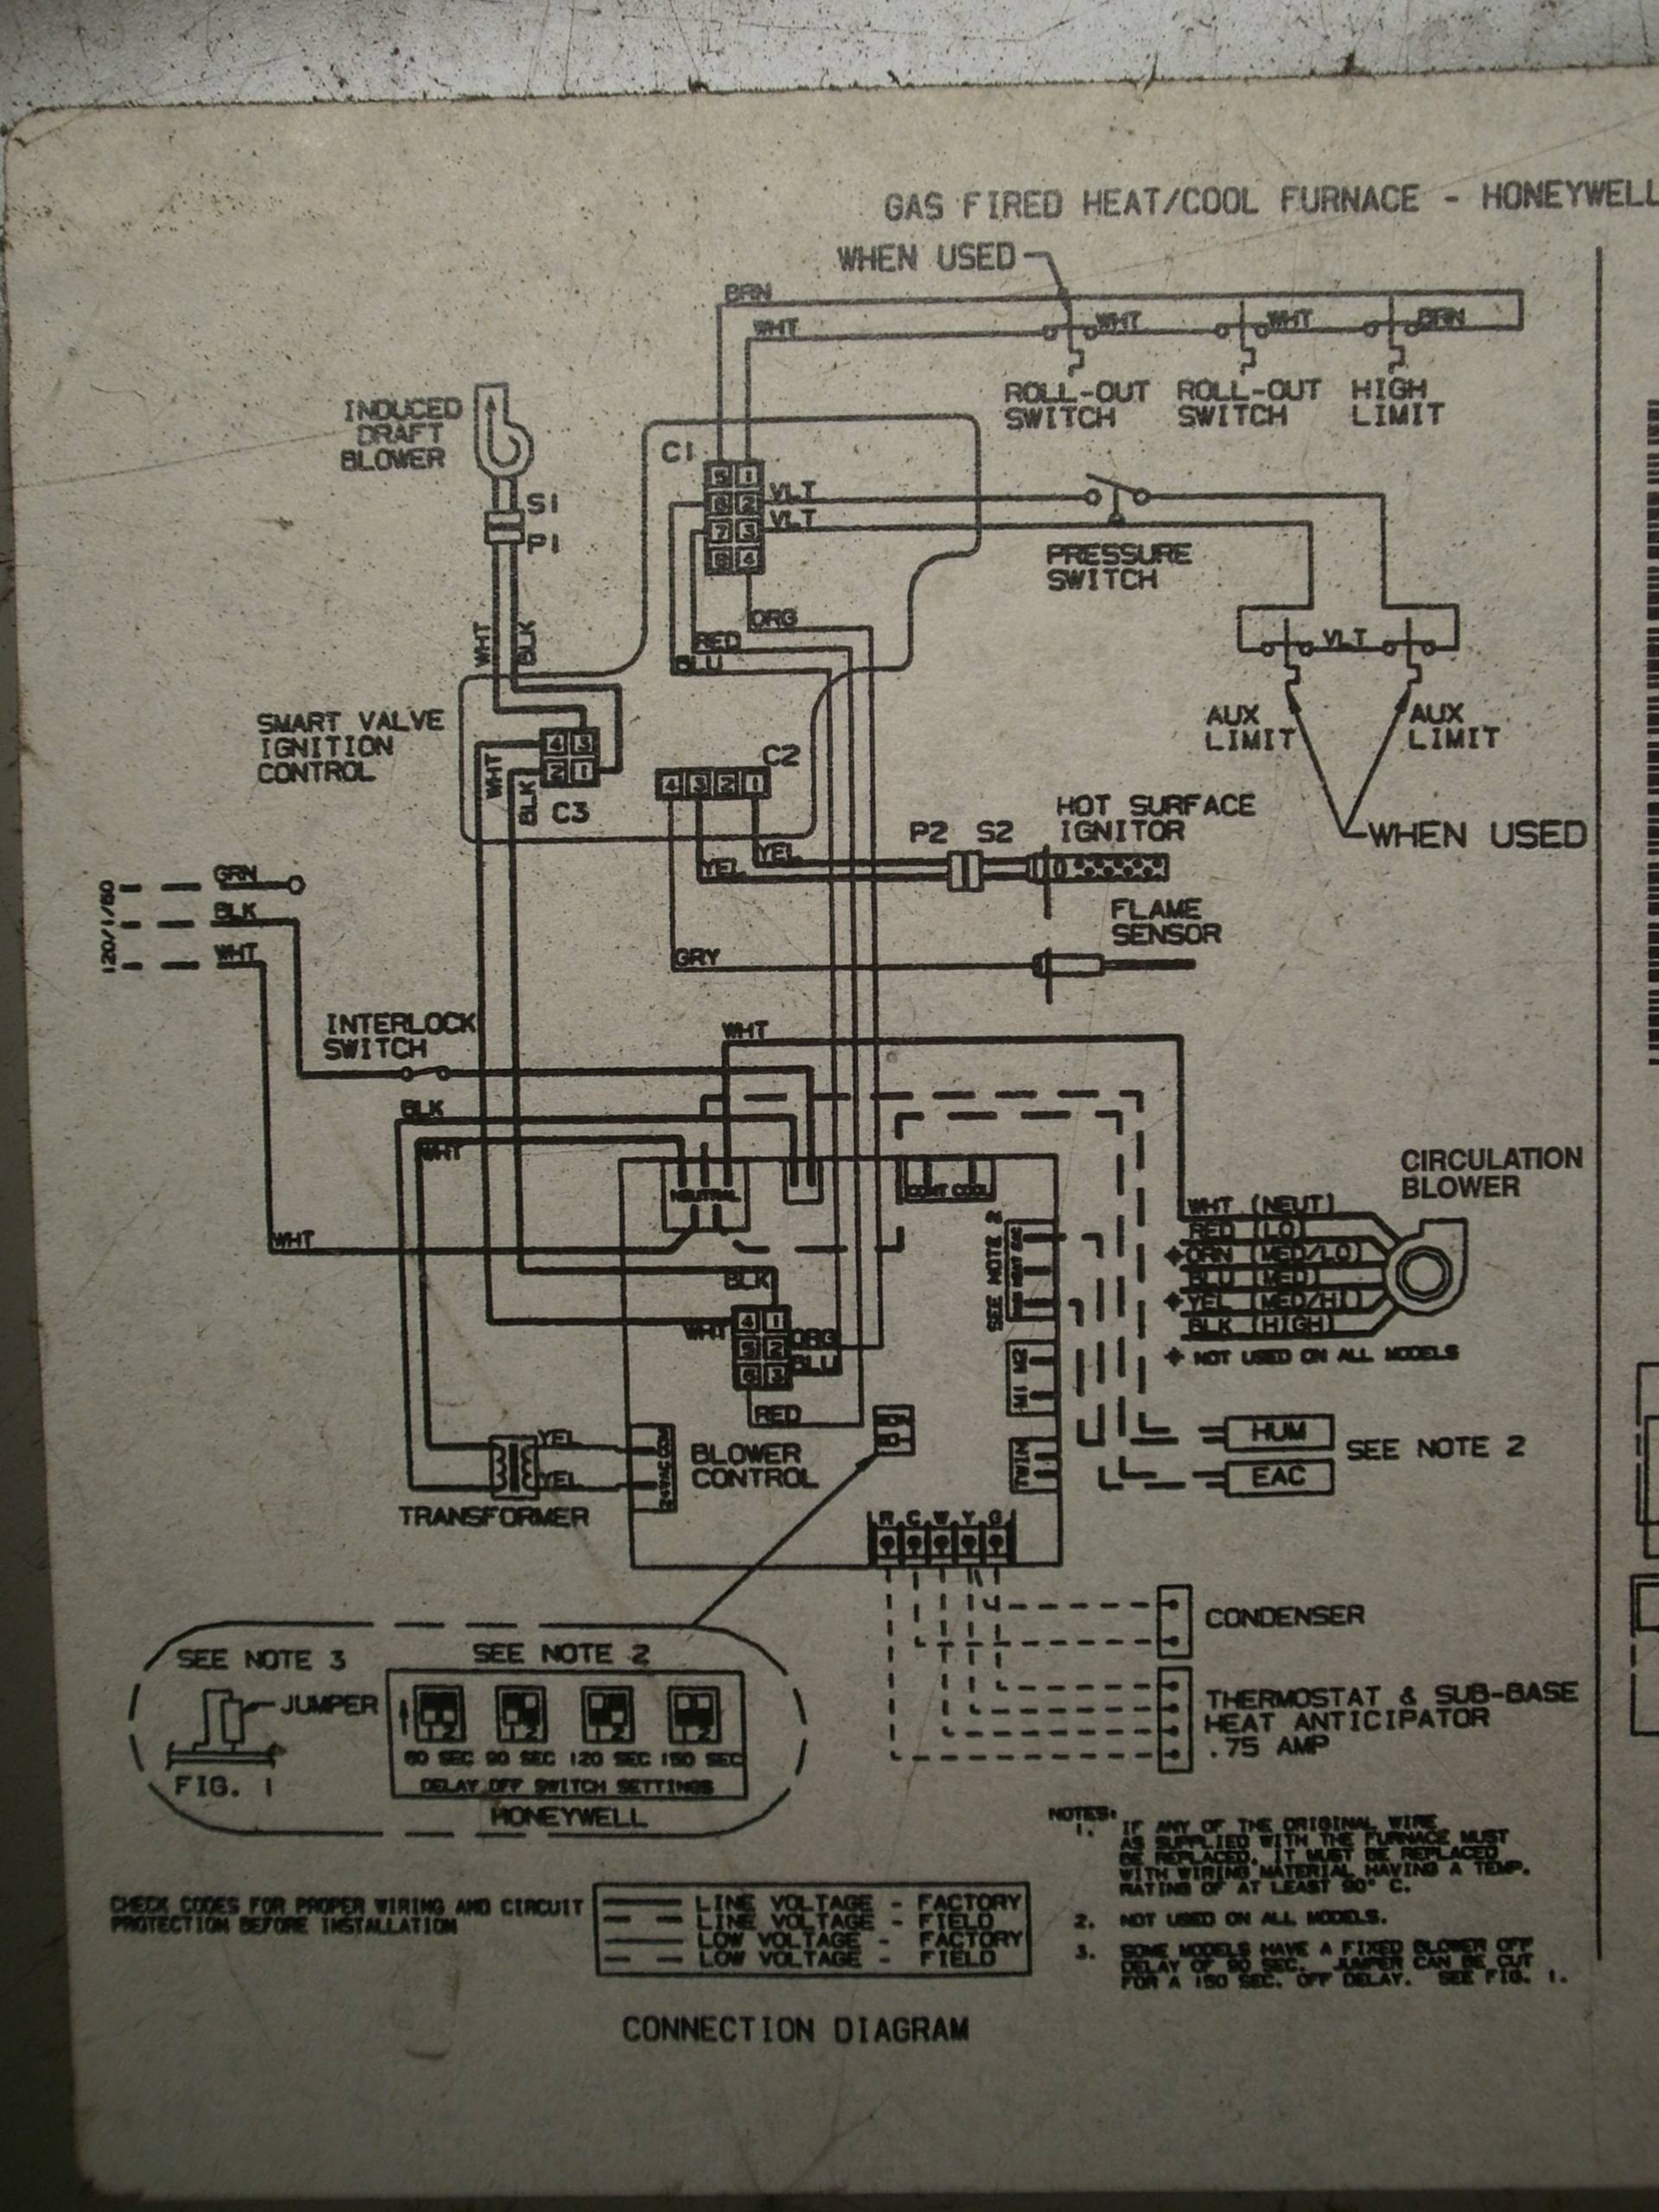 hight resolution of wiring diagram also troubleshooting hvac schematic likewise hvac troubleshooting hvac schematic